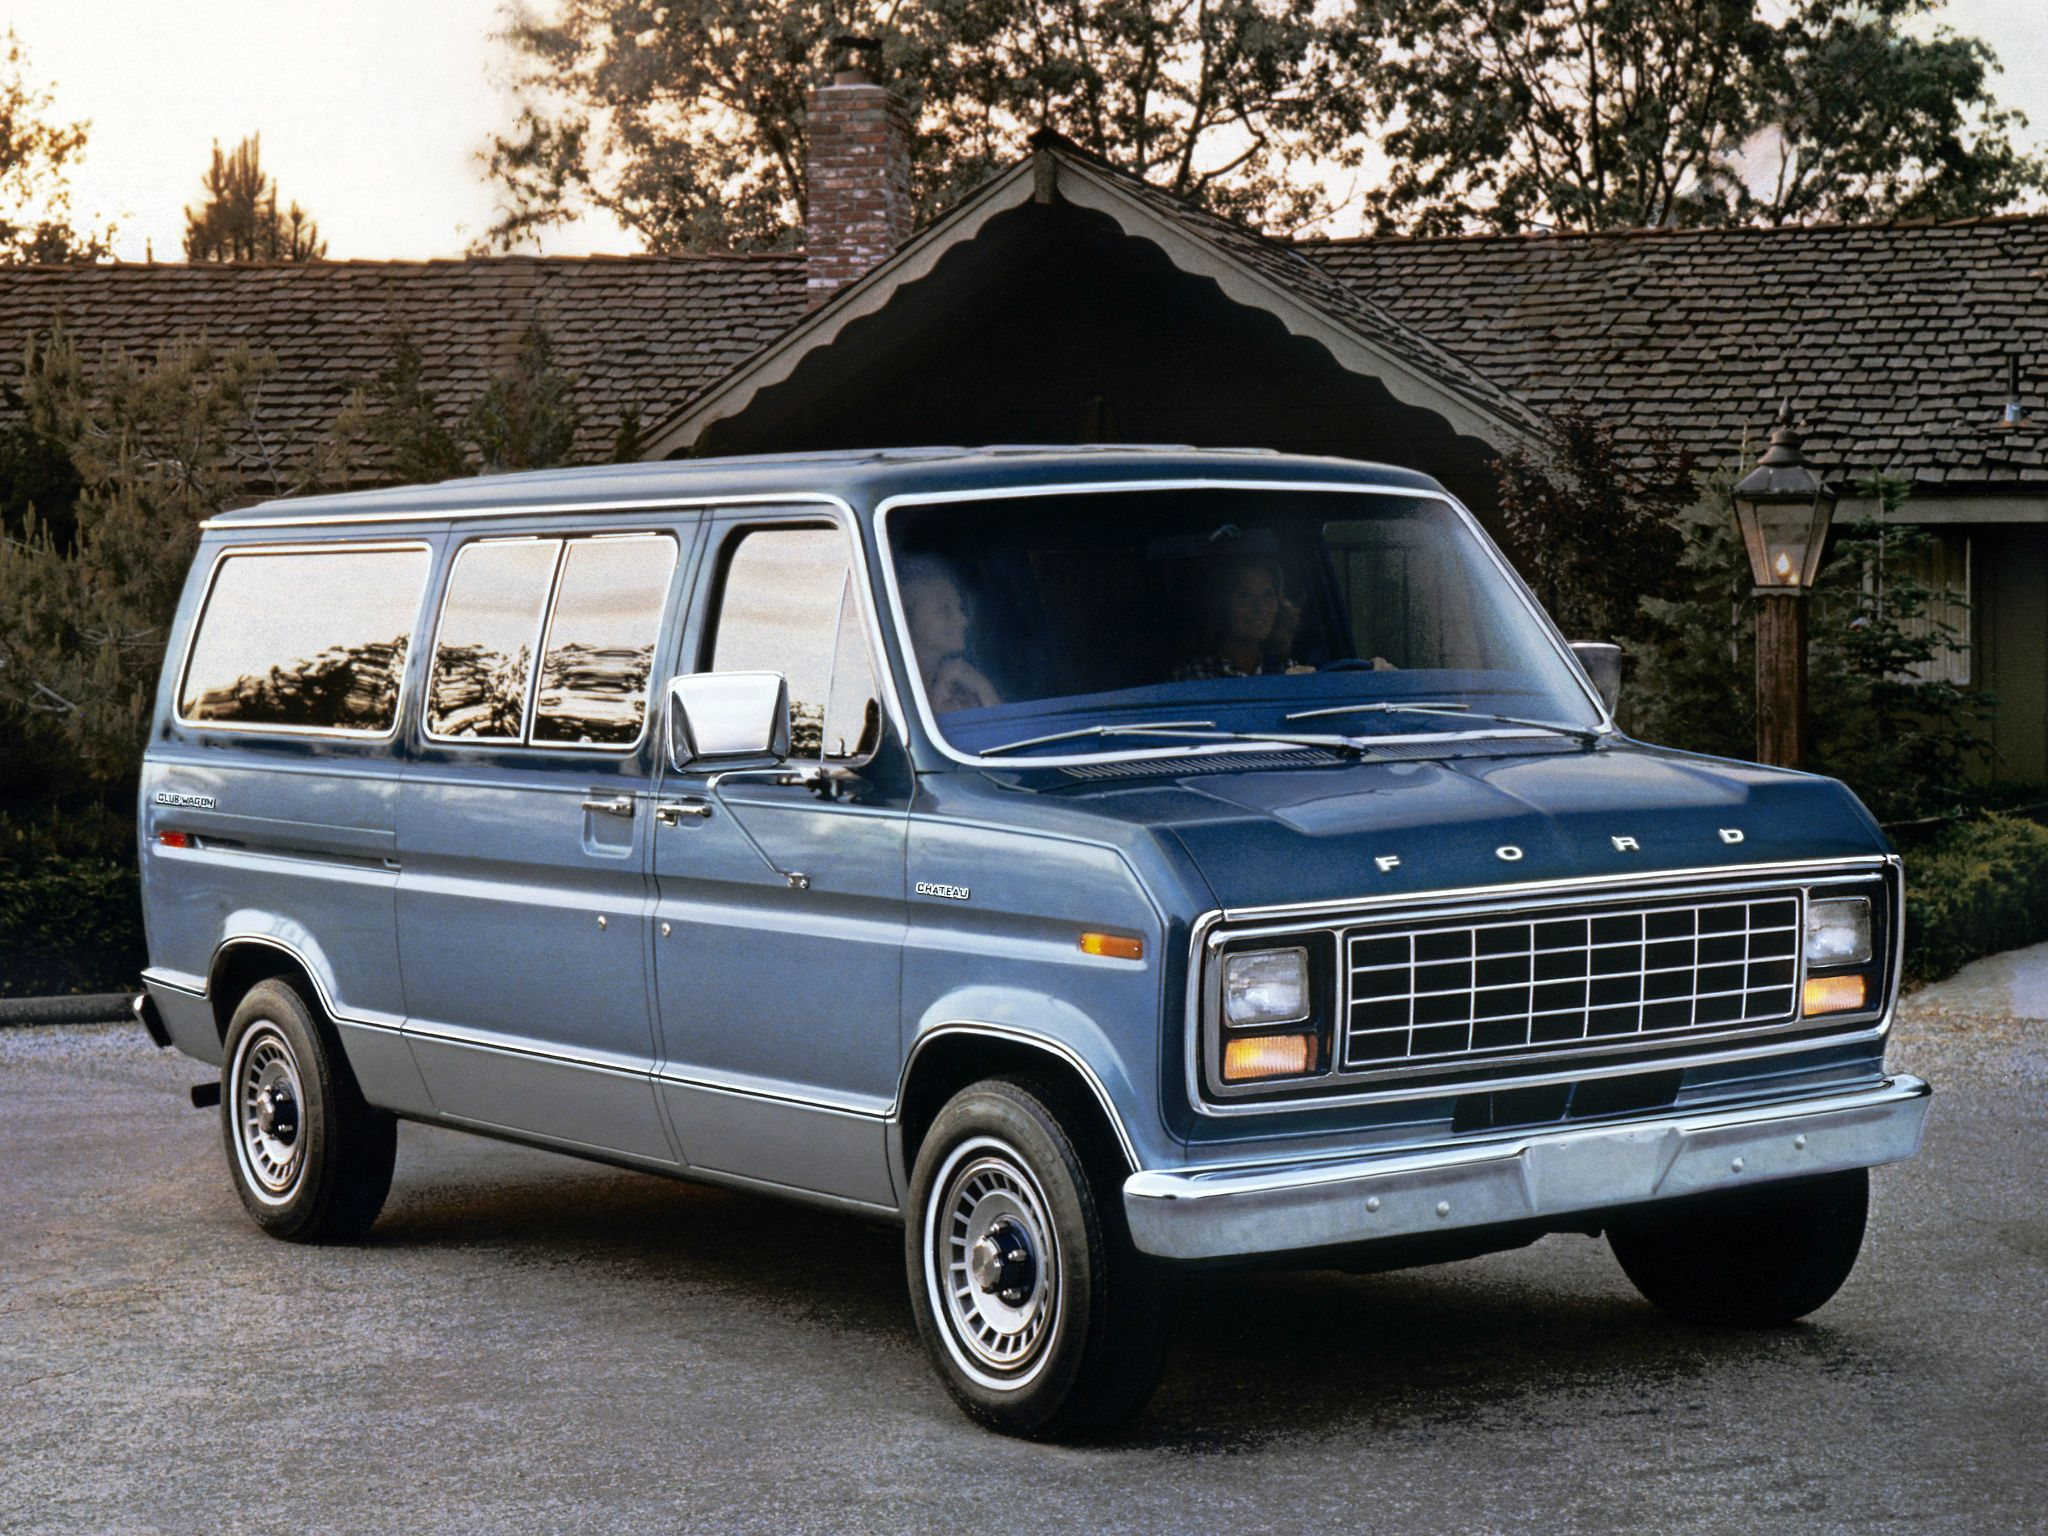 1980 Econoline Van Family Transportation Ford Van Wagon Ford